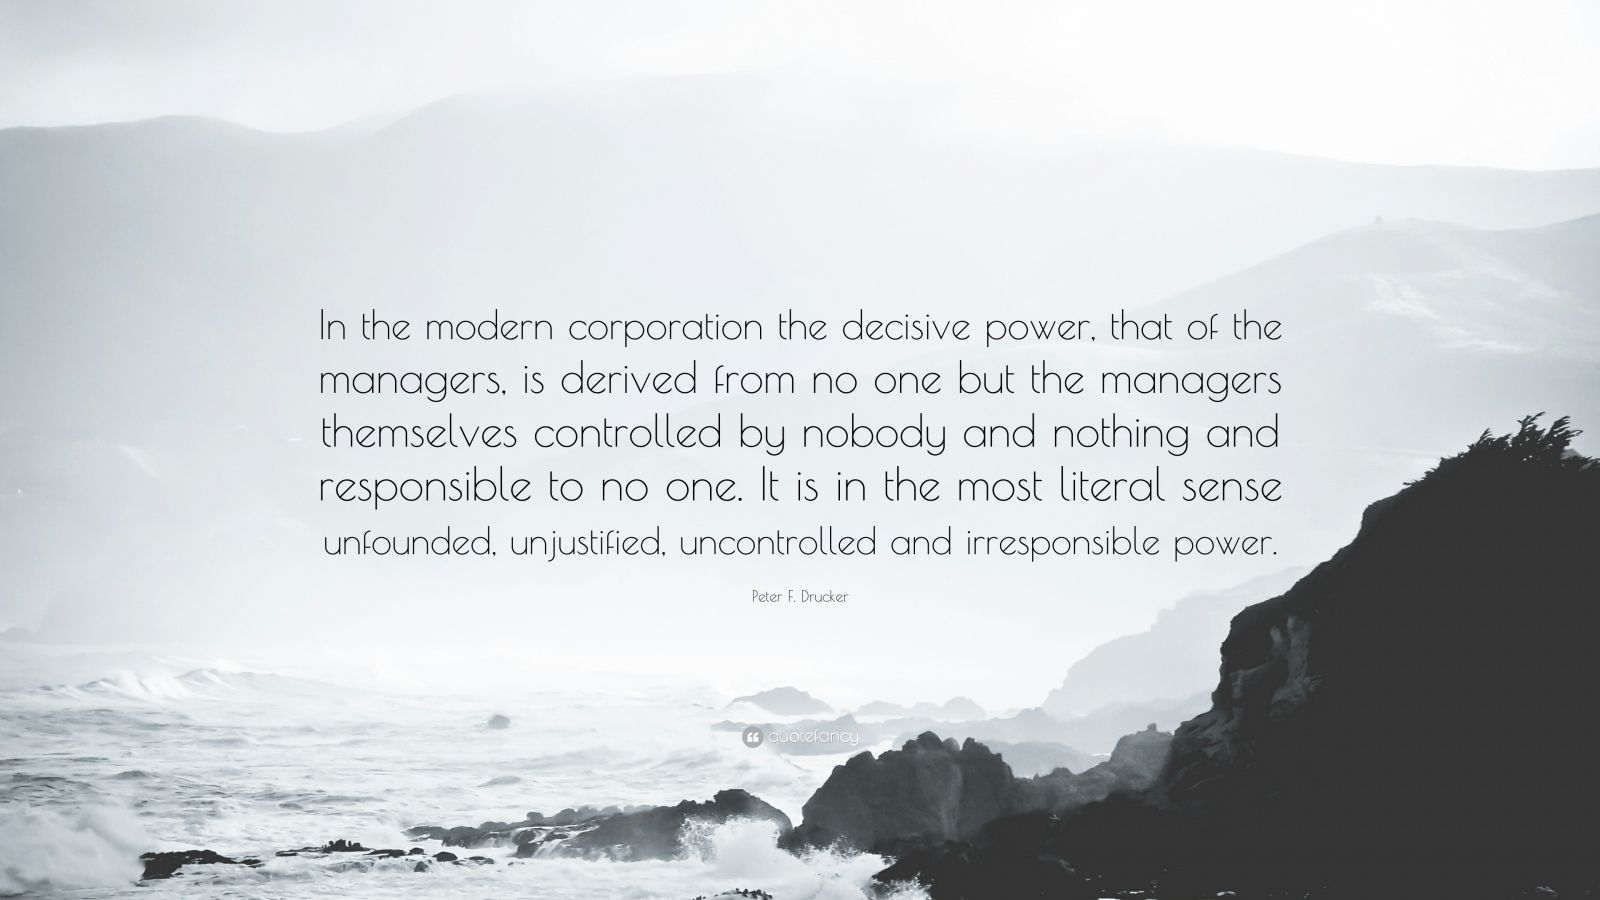 "Peter F. Drucker Quote: ""In the modern corporation the decisive power, that of the managers, is derived from no one but the managers themselves controlled by nobody and nothing and responsible to no one. It is in the most literal sense unfounded, unjustified, uncontrolled and irresponsible power."""